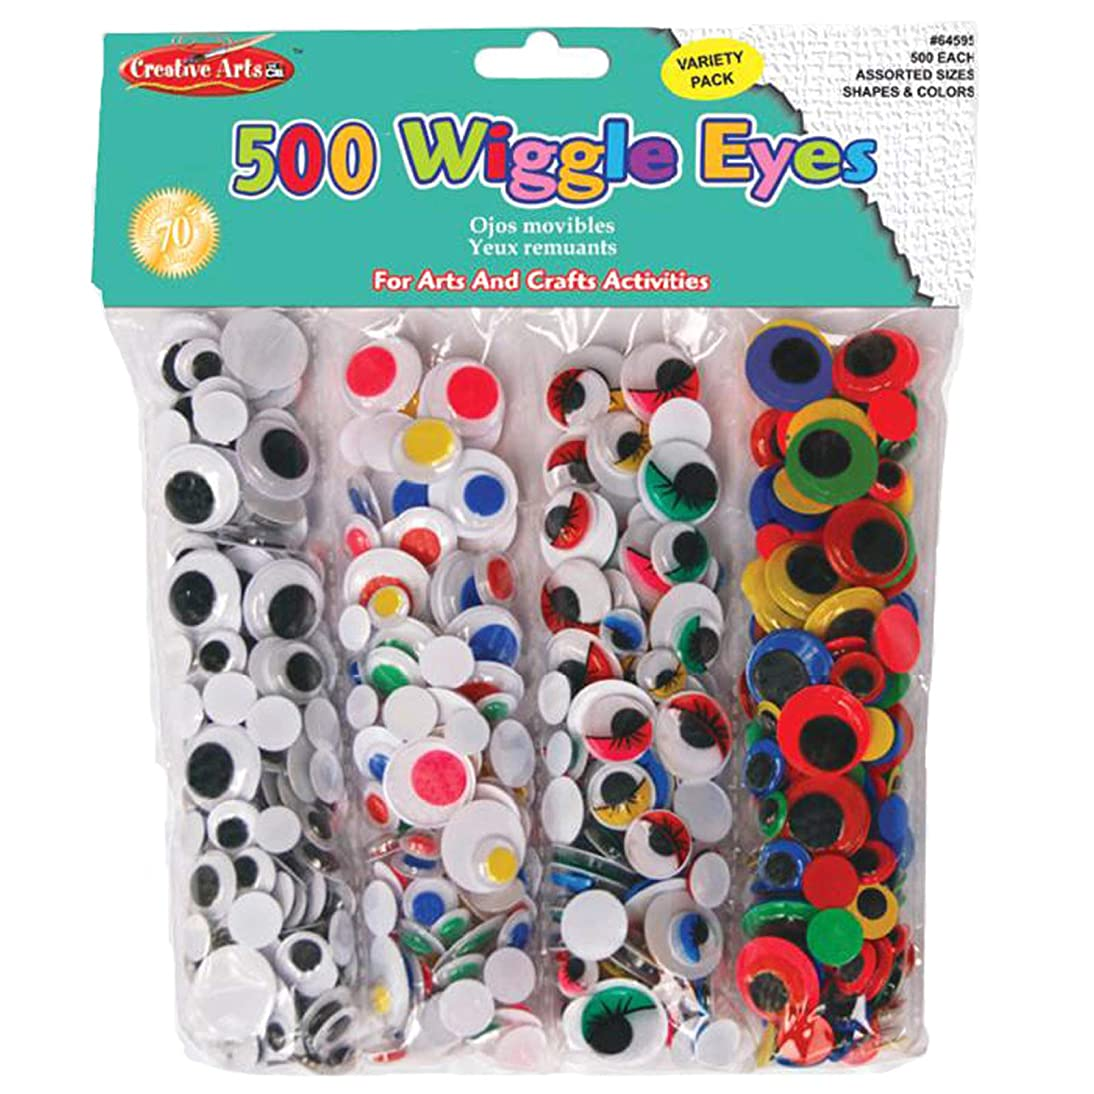 Creative Arts by Charles Leonard Wiggle Eye Combo Pack, 125 Each of 4 Assorted Styles and Colors, 500/Bag (64595)